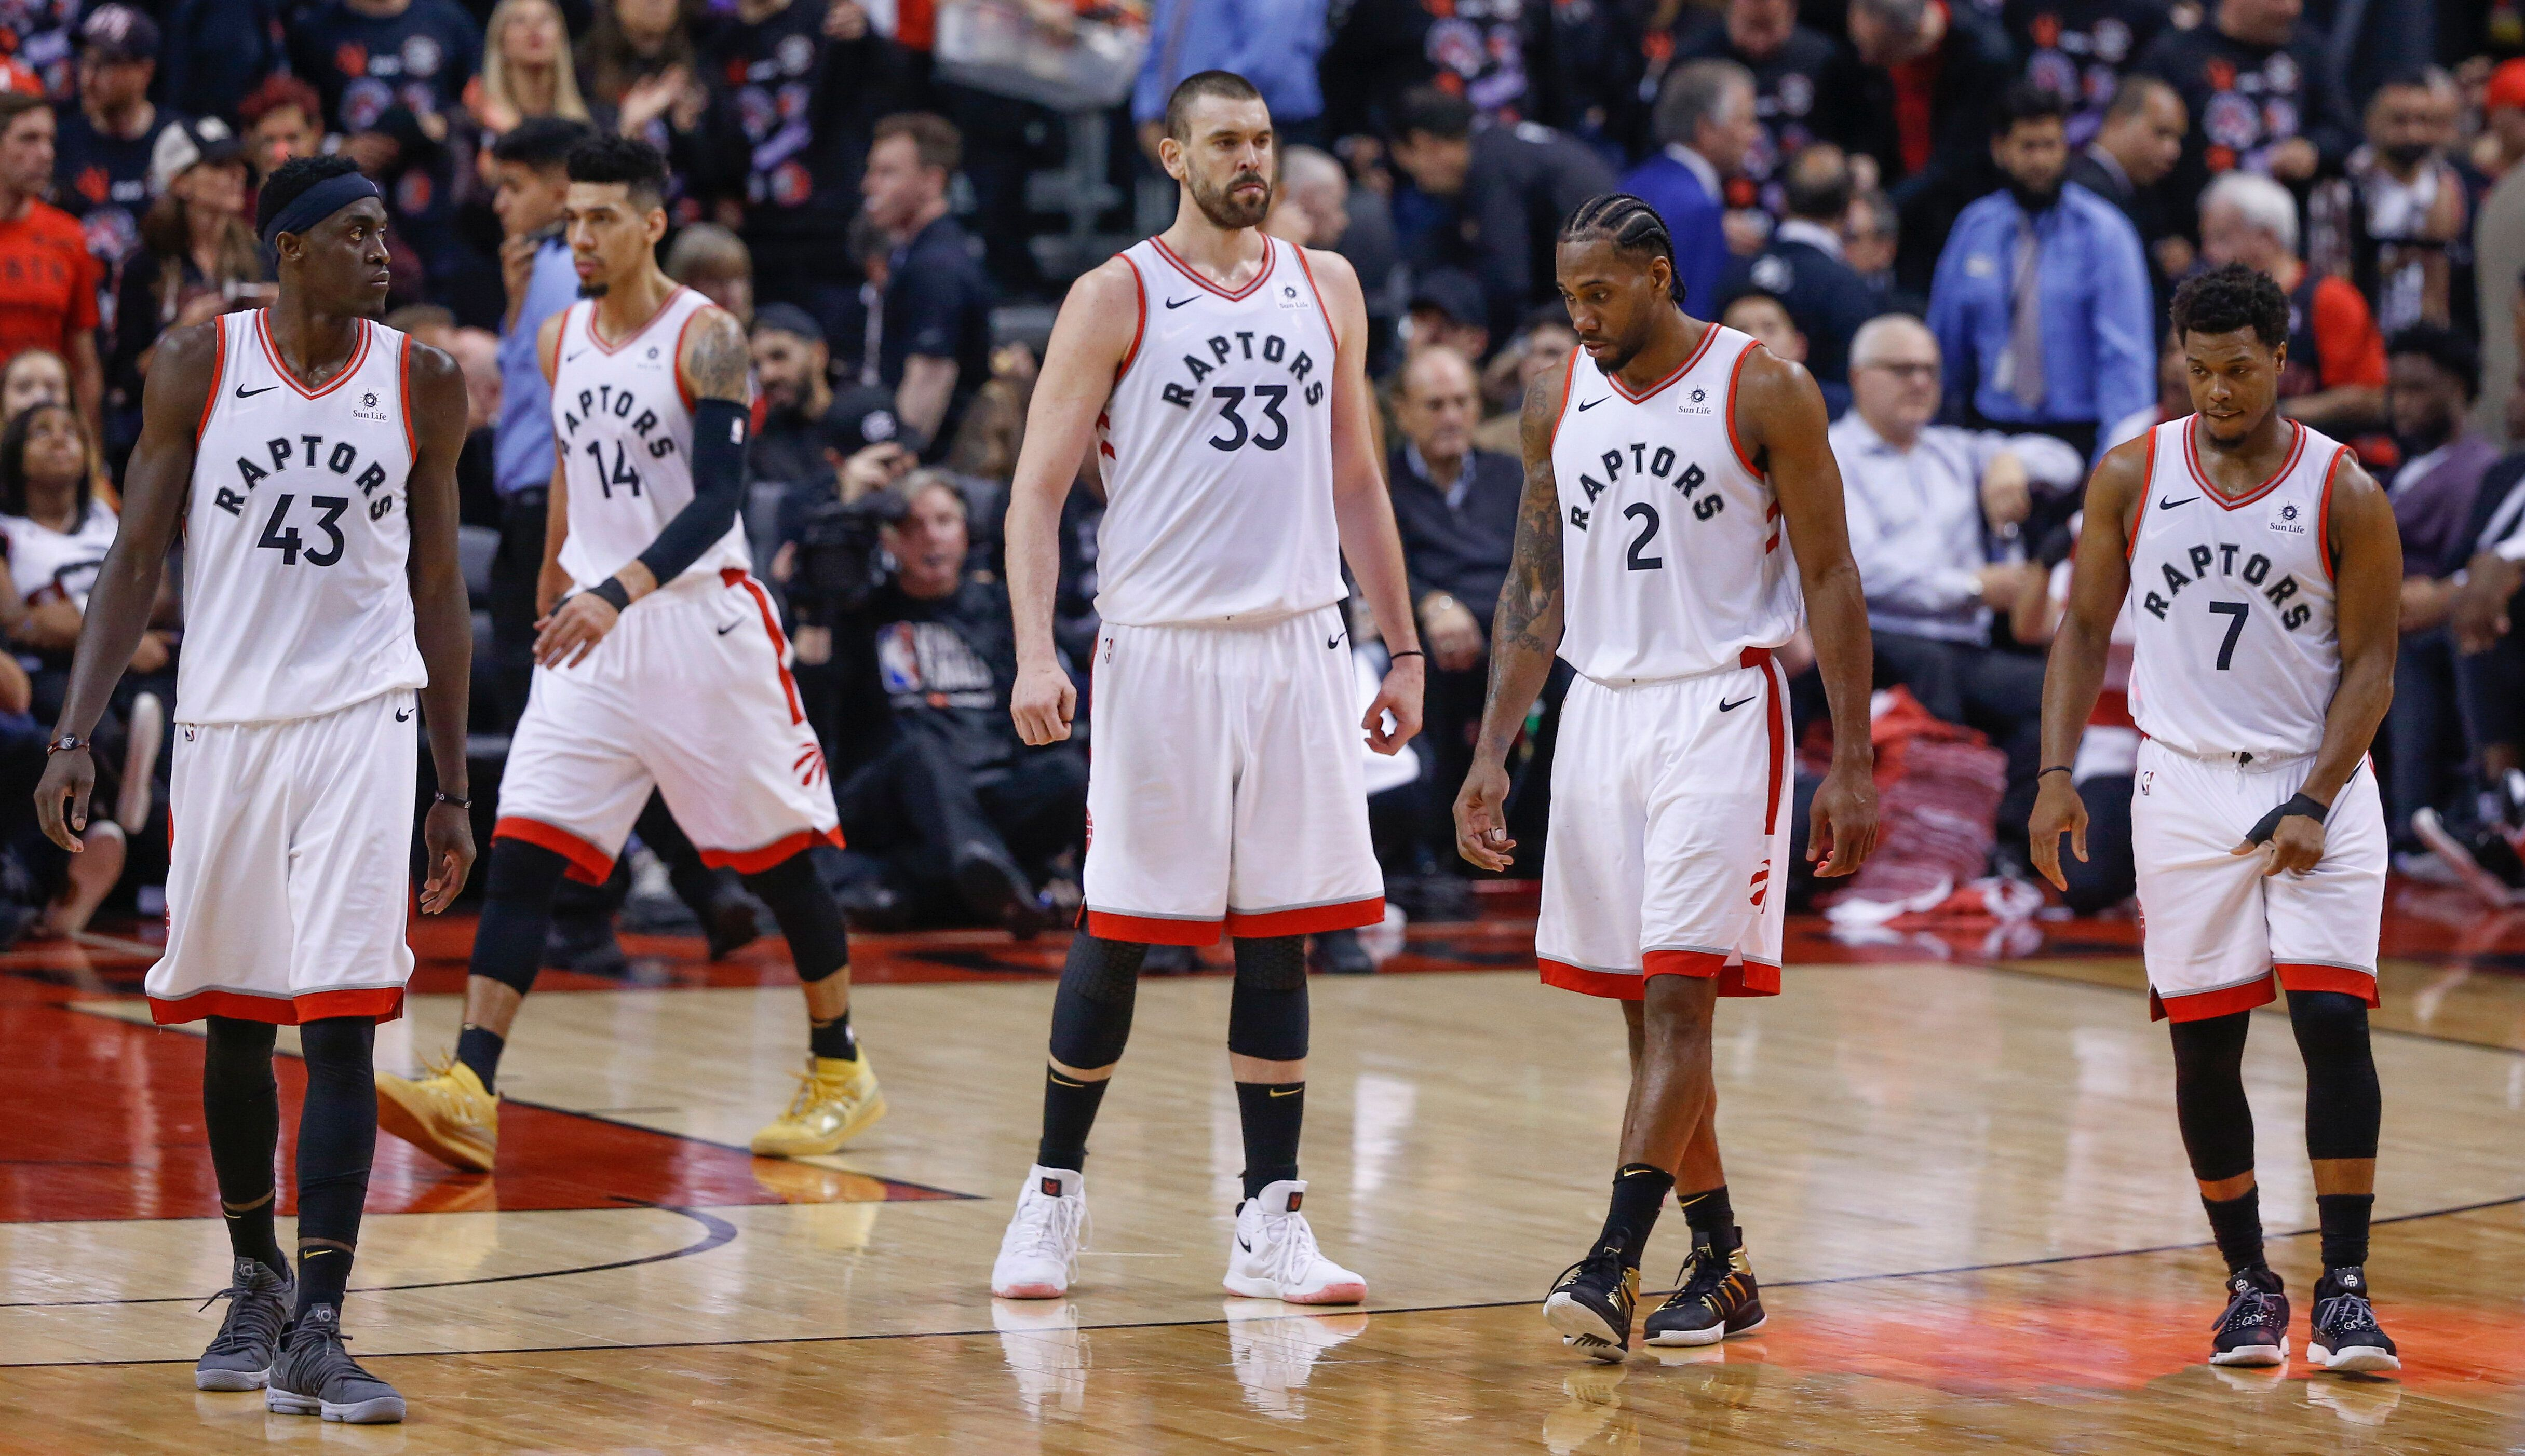 Paskal Siakam led the way, but it was a true team effort in the Raptors' Game 1 win. (Getty)